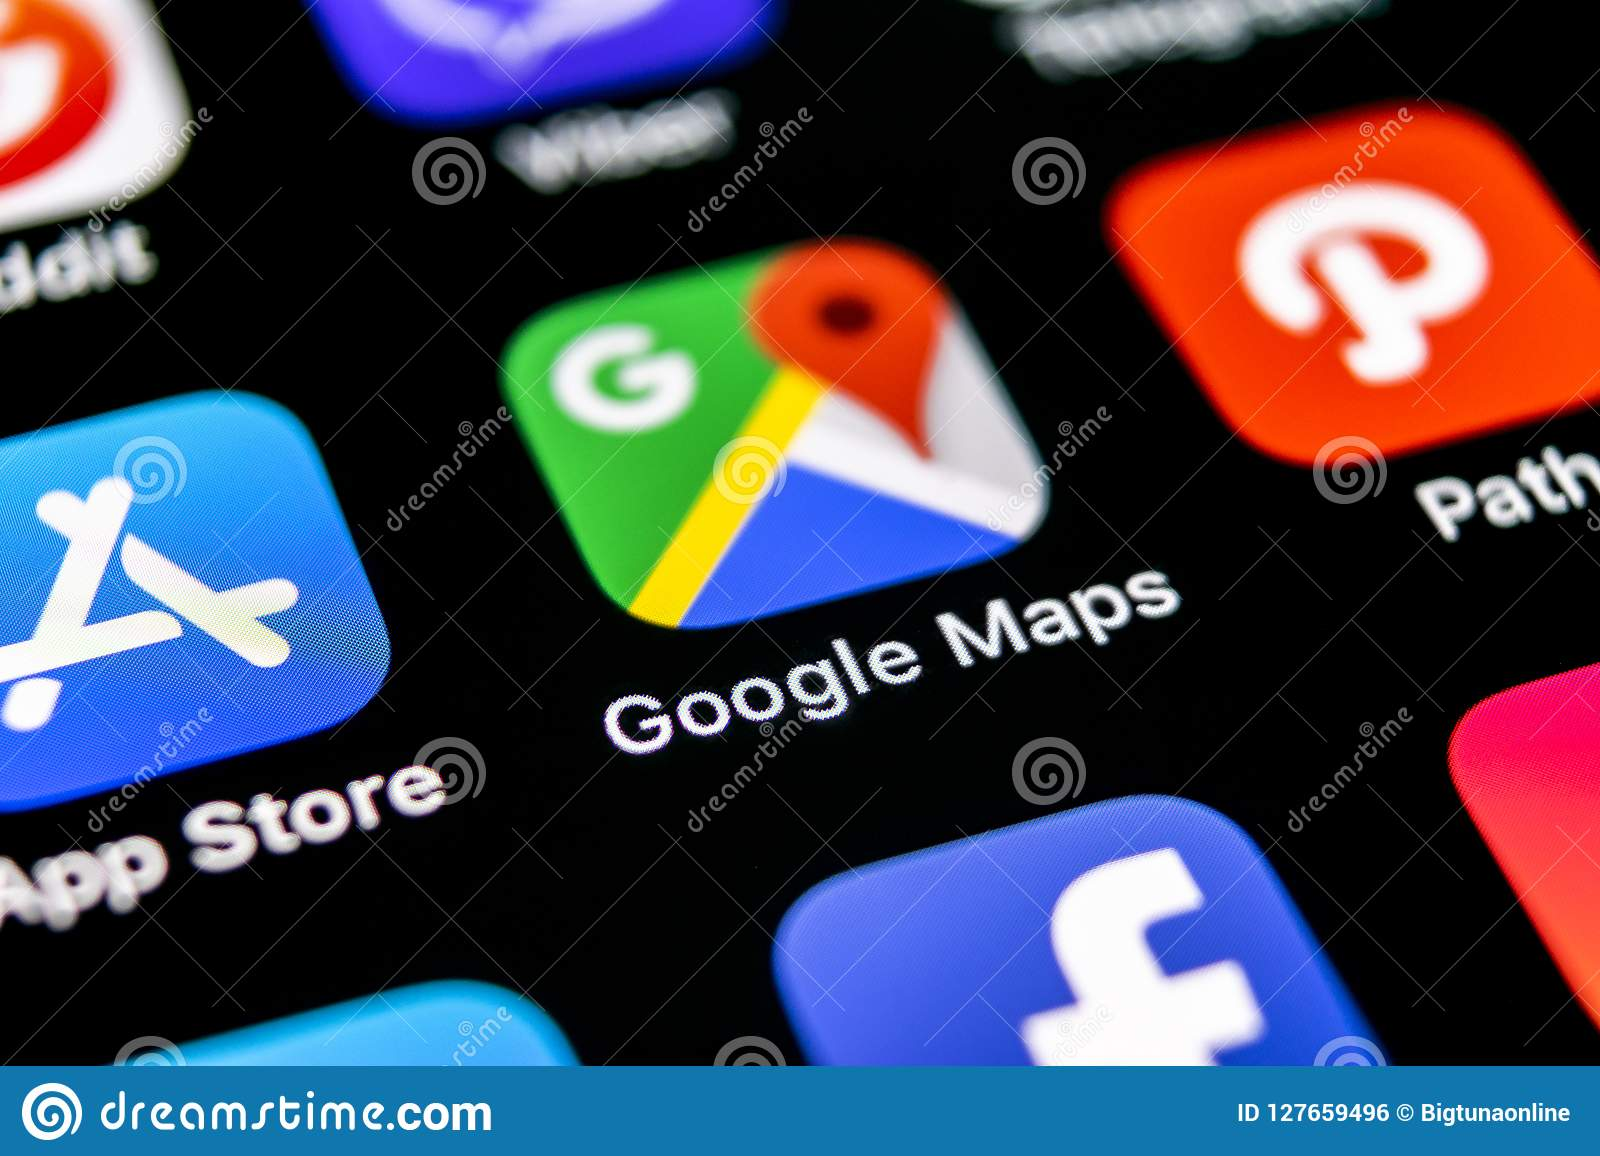 Google Maps Application Icon On Apple IPhone X Screen Close ... on microsoft maps, iphone maps, bing maps, search maps, topographic maps, road map usa states maps, ipad maps, stanford university maps, goolge maps, online maps, android maps, gogole maps, msn maps, waze maps, gppgle maps, amazon fire phone maps, aeronautical maps, googlr maps, aerial maps, googie maps,